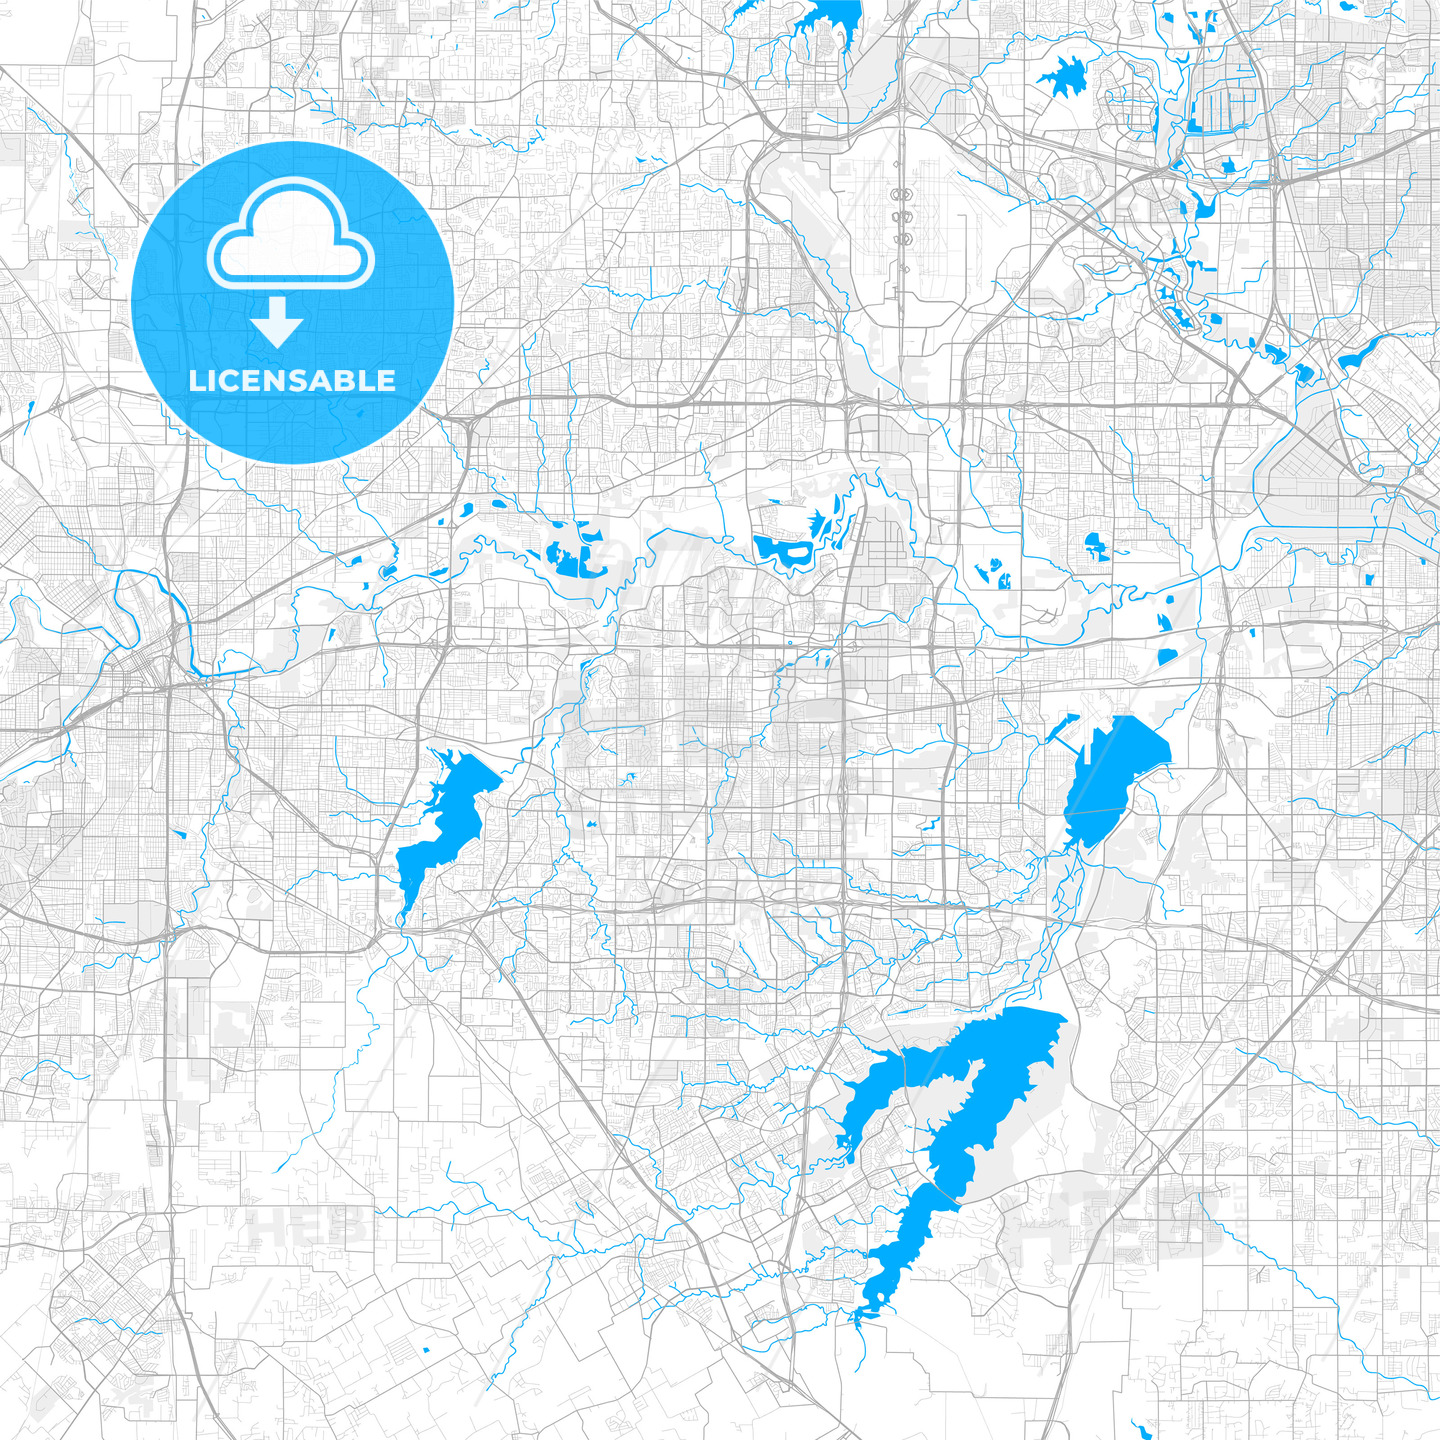 Rich detailed vector map of Arlington, Texas, U.S.A. on lakes of texas, detailed texas map with cities and towns, well known landmarks in texas, the three branch of texas, us map texas, hotels of texas, all cities in texas, mapquest maps south texas, austin texas, sun of texas, google of texas, weather of texas, detailed texas road atlas, winds of texas, project of texas, republic of texas, borger tx map texas, southern coast of texas, flickr texas, business of texas,